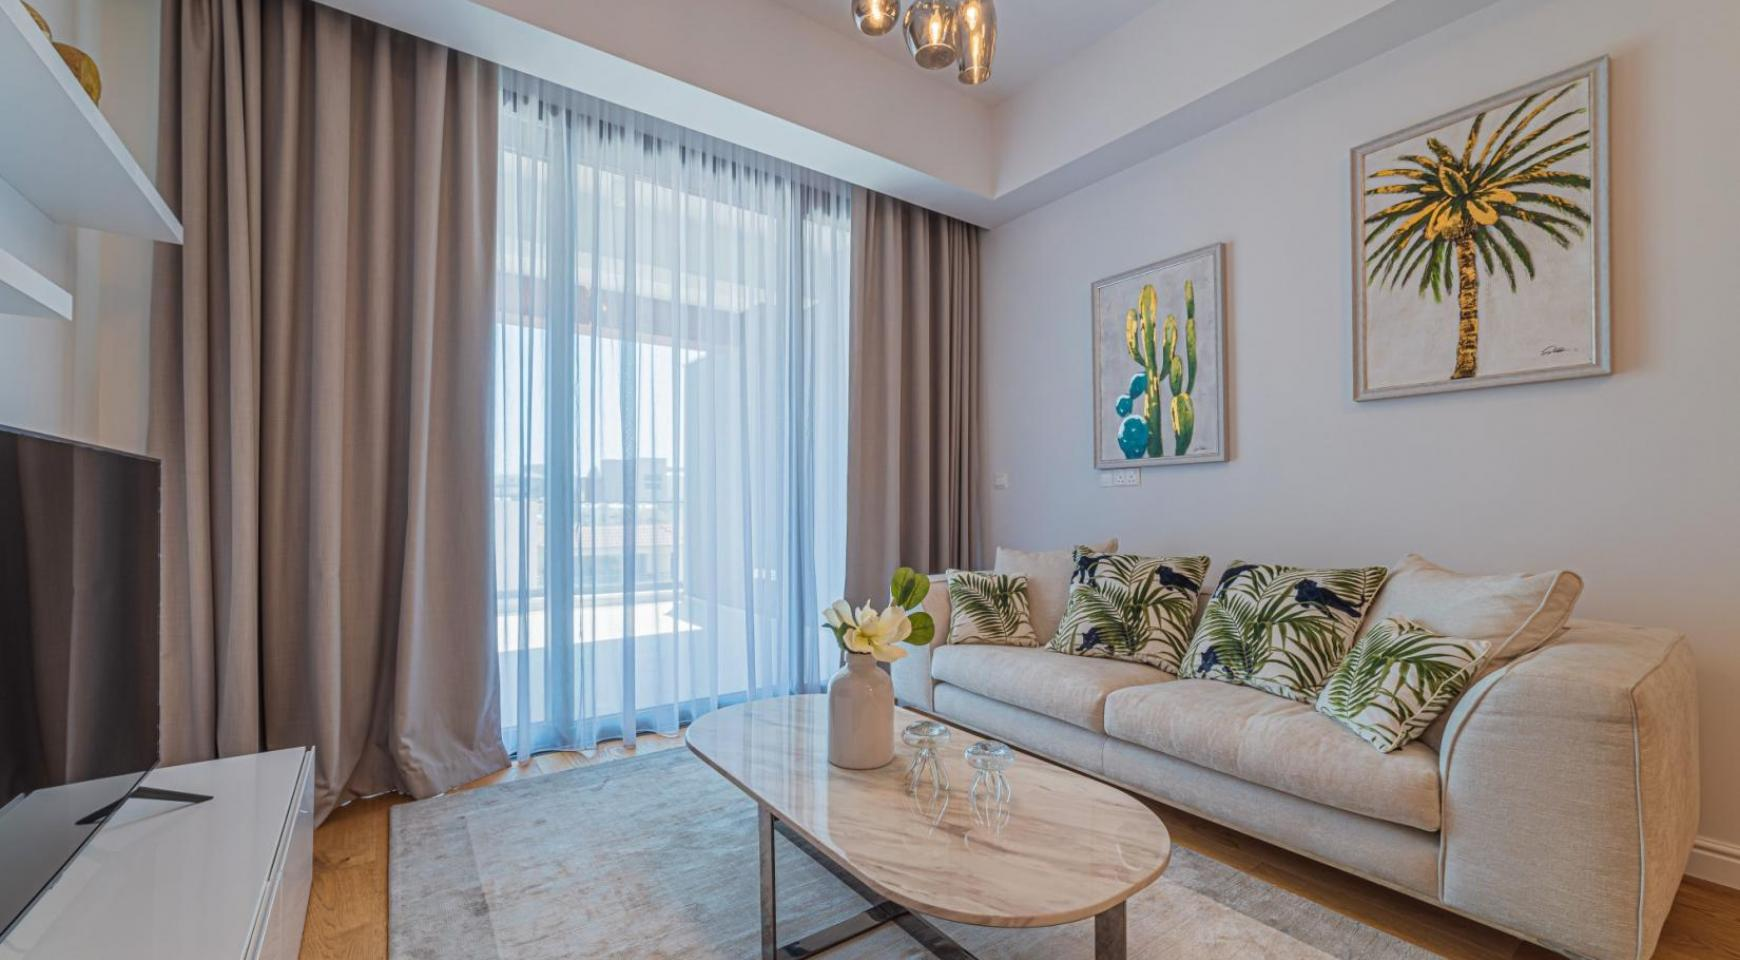 Hortensia Residence, Apt. 302. 2 Bedroom Apartment within a New Complex near the Sea  - 51